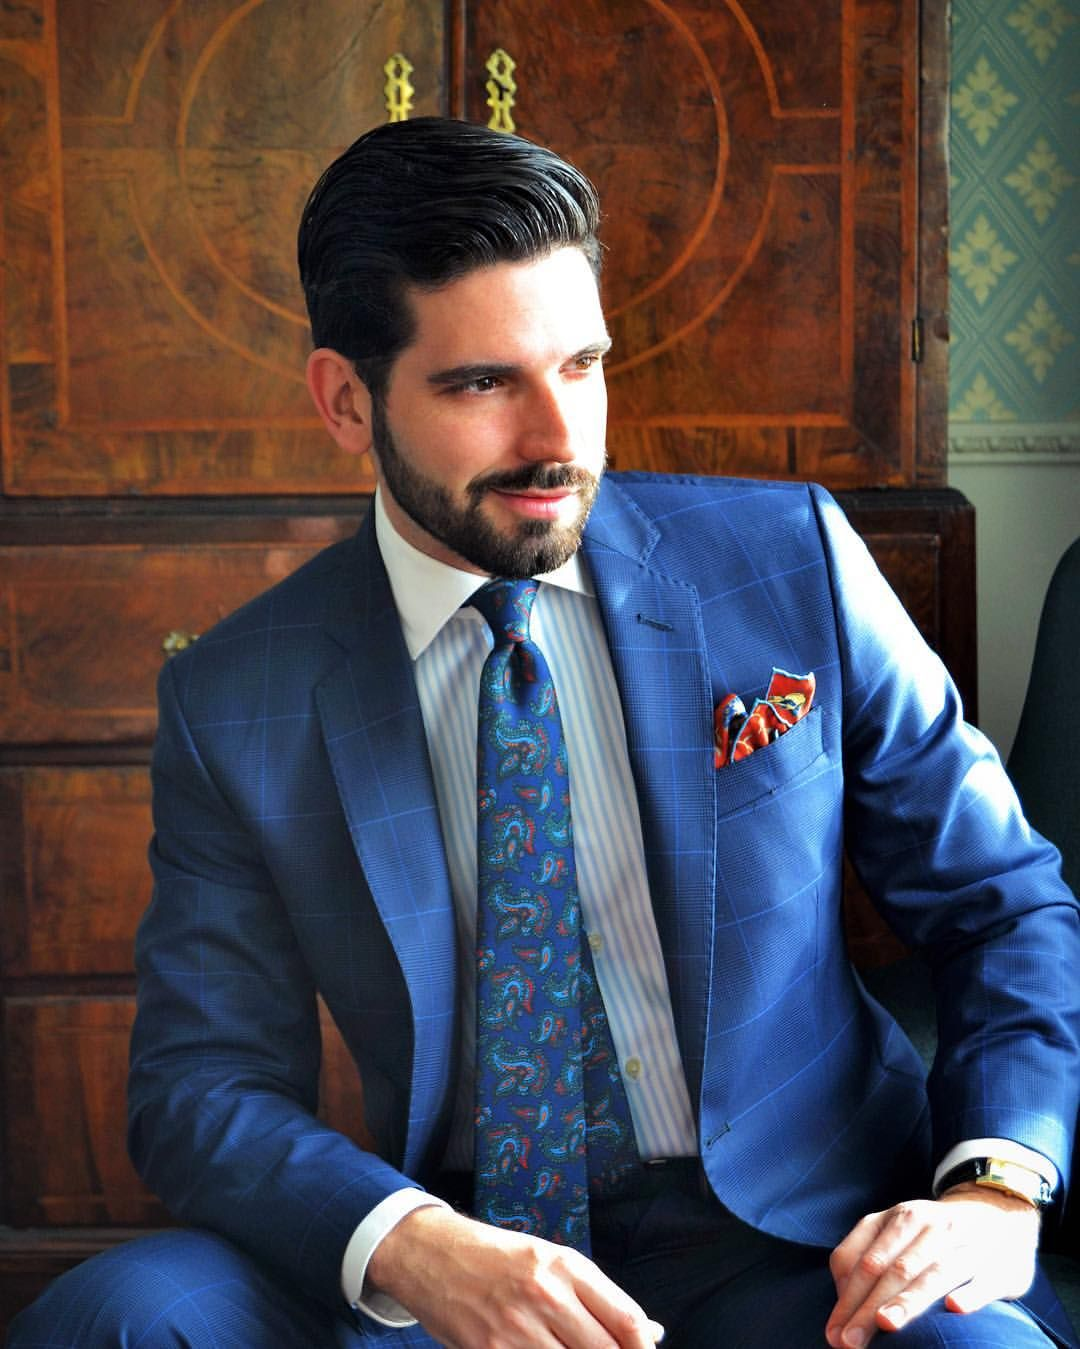 Suit and tie fixation — Make today worth remembering  | Brogues in